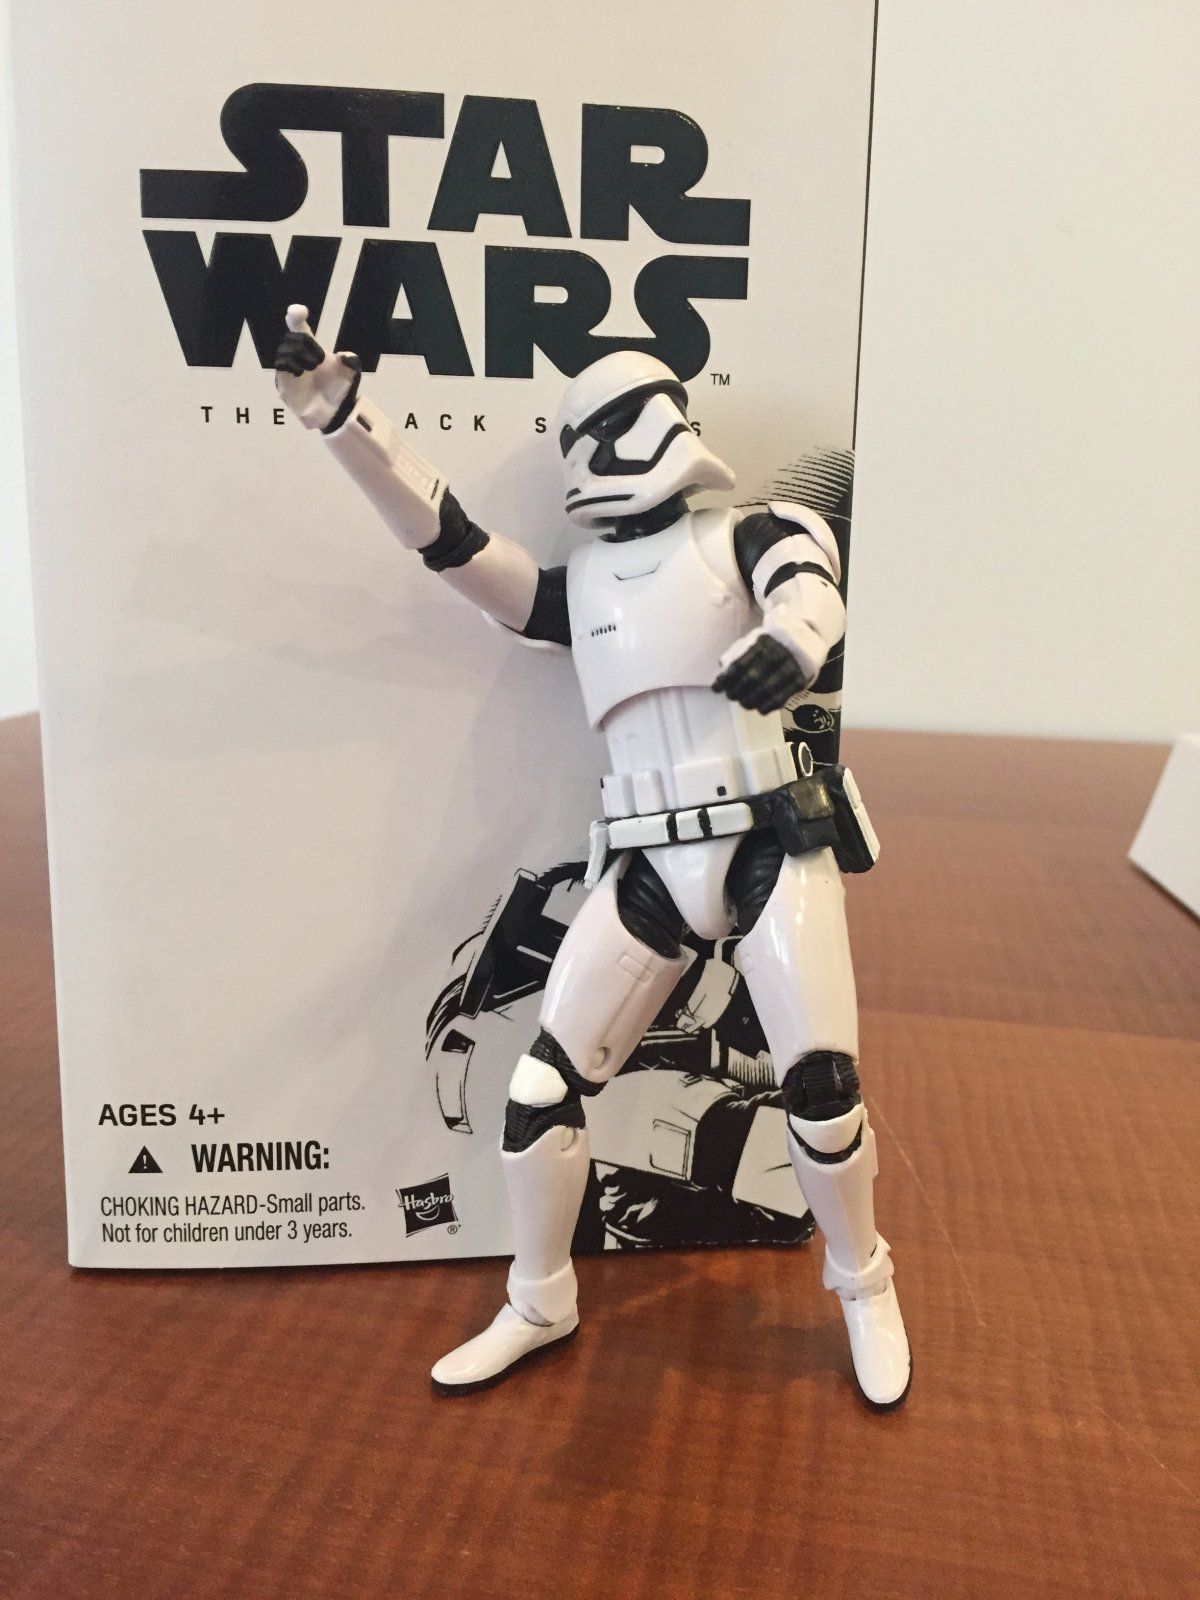 Everyone at San Diego Comic-Con is going to freak out over this Star Wars Stormtrooper toy.